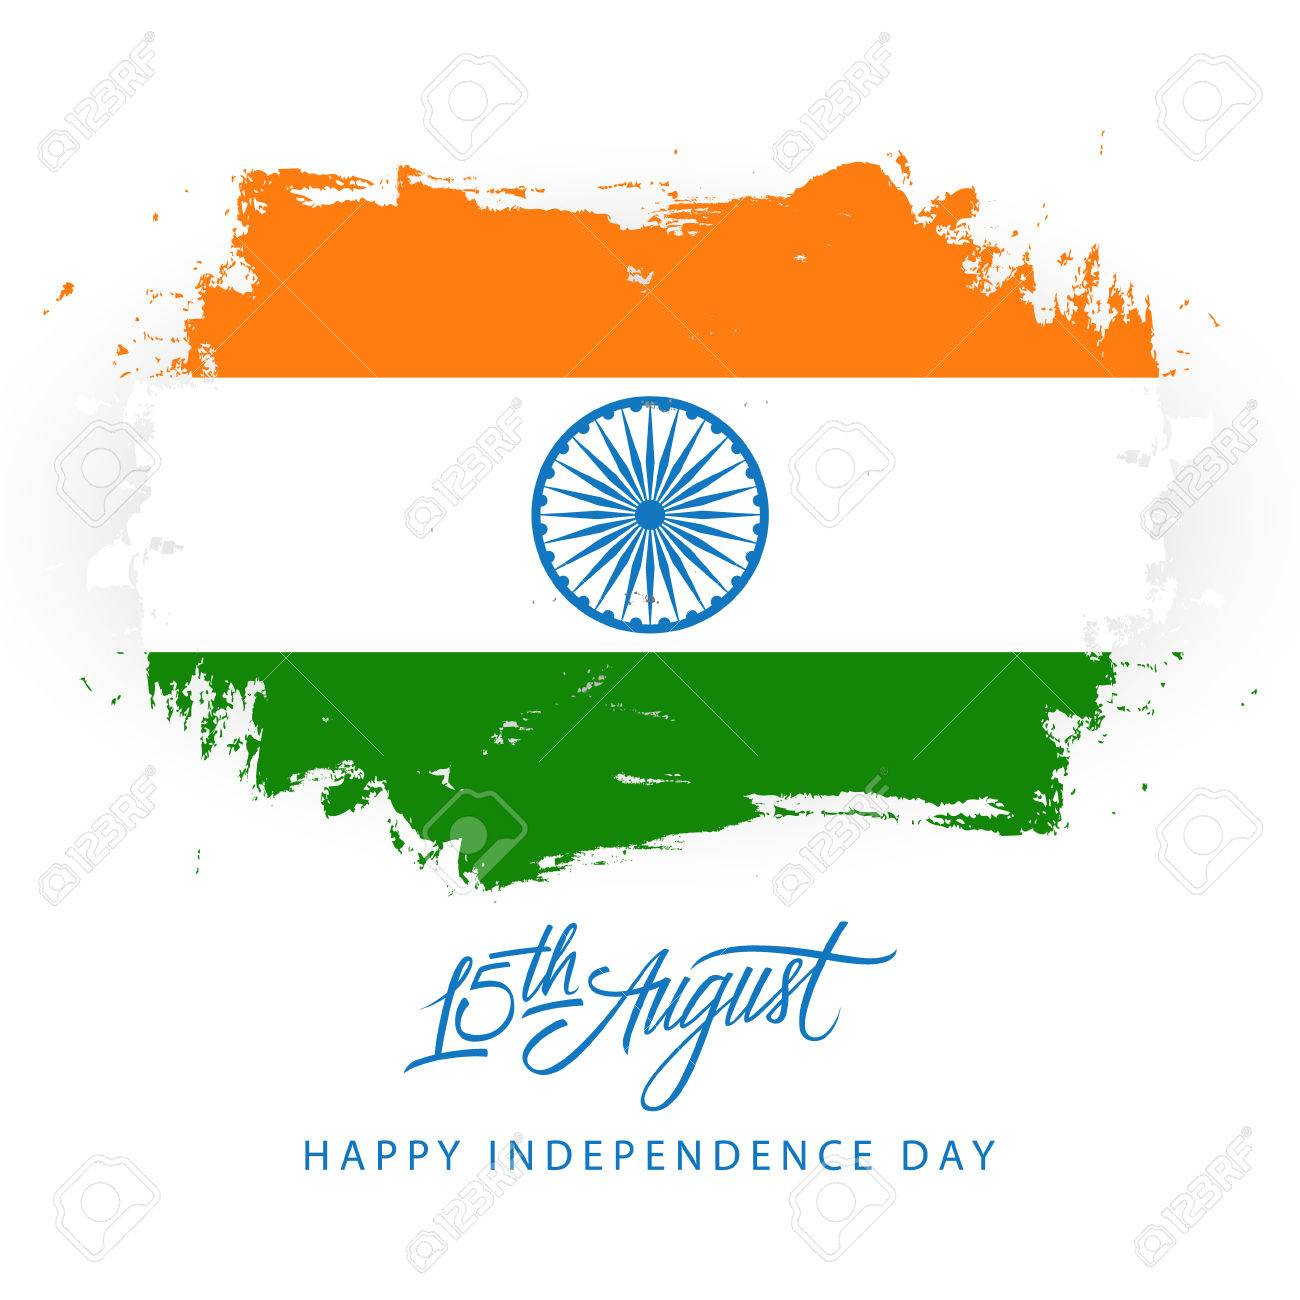 15 august in india